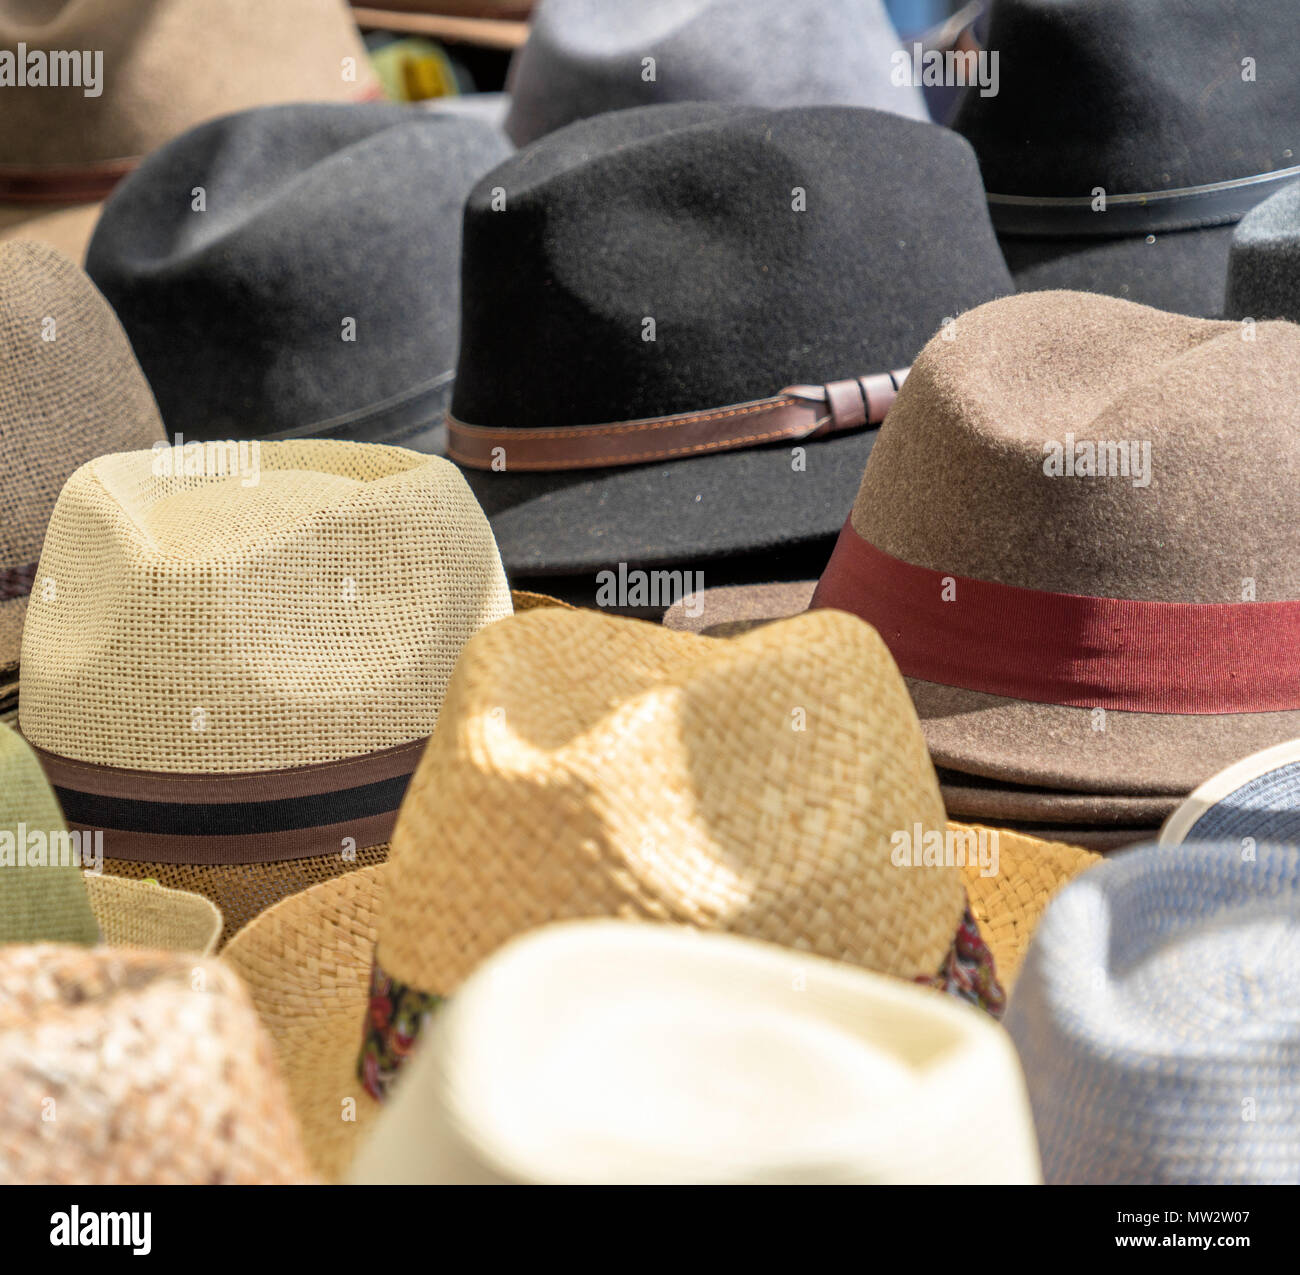 Many hats for men in different shapes and colors in one display for sale, germany - Stock Image